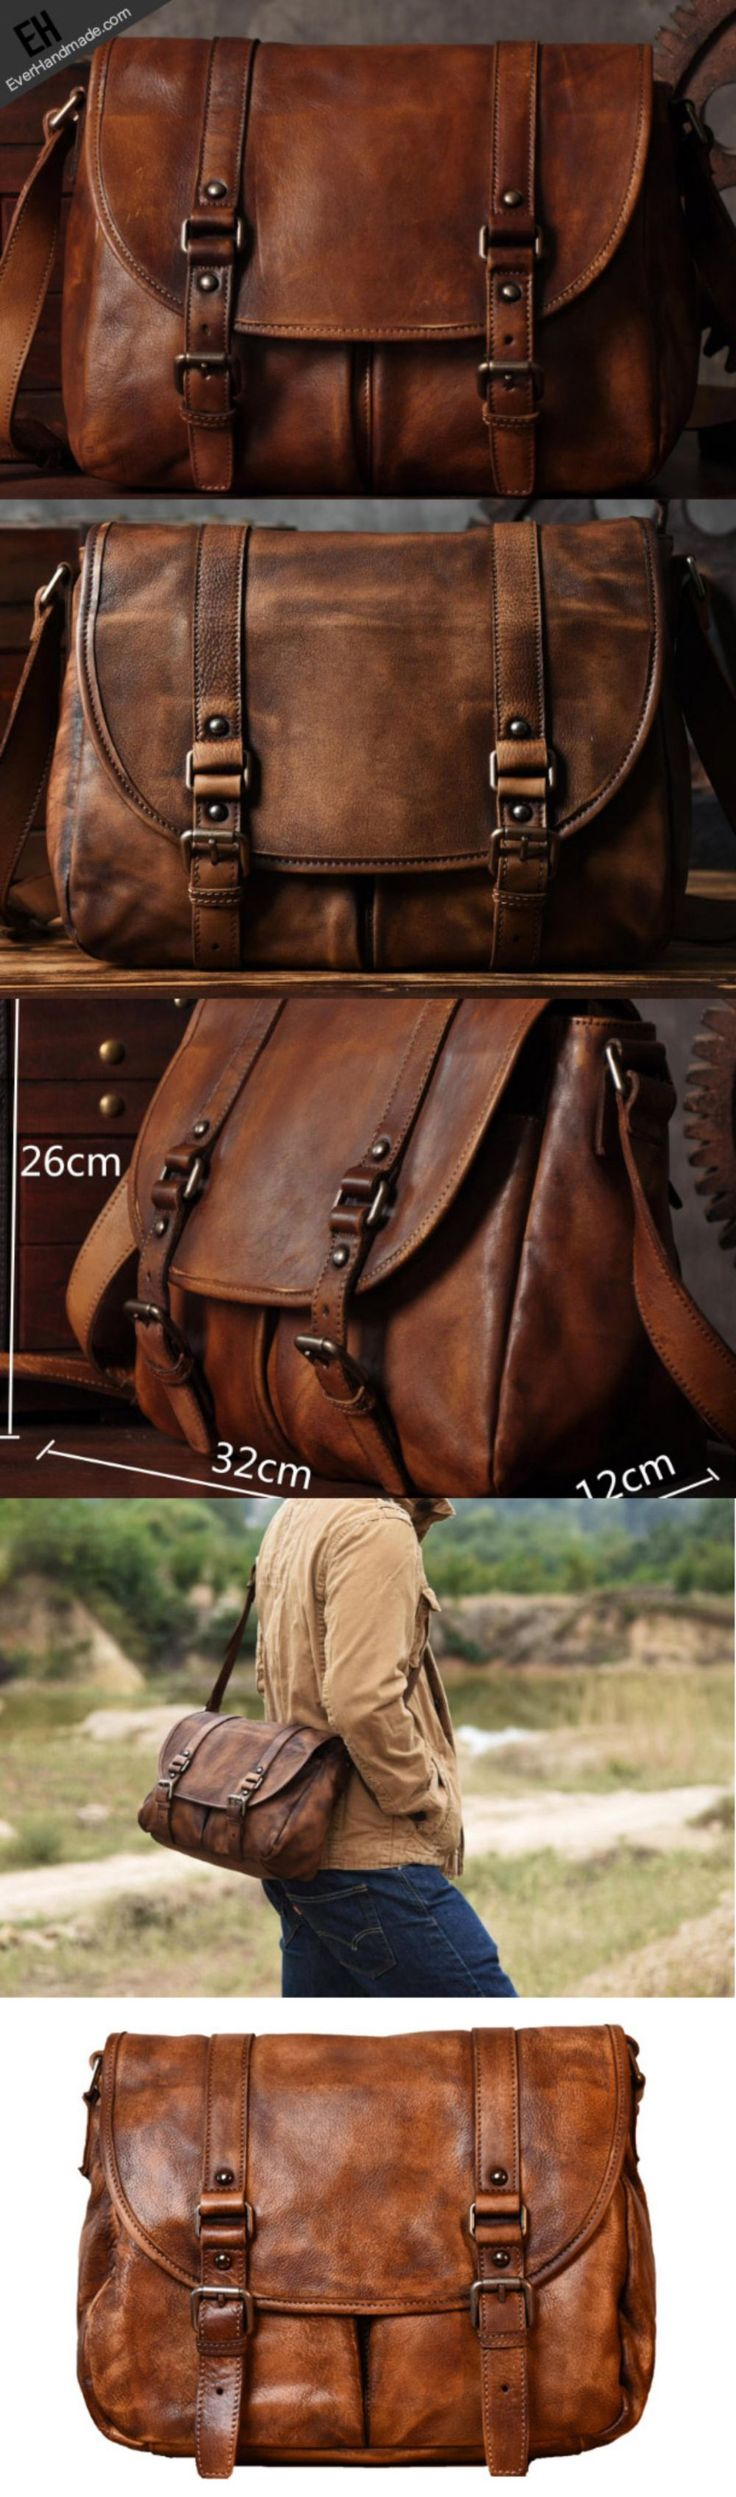 Stunning 30 Best Shoulder Leather Bags for Your Casual Style from https://www.fashionetter.com/2017/06/17/30-best-shoulder-leather-bags-casual-style/